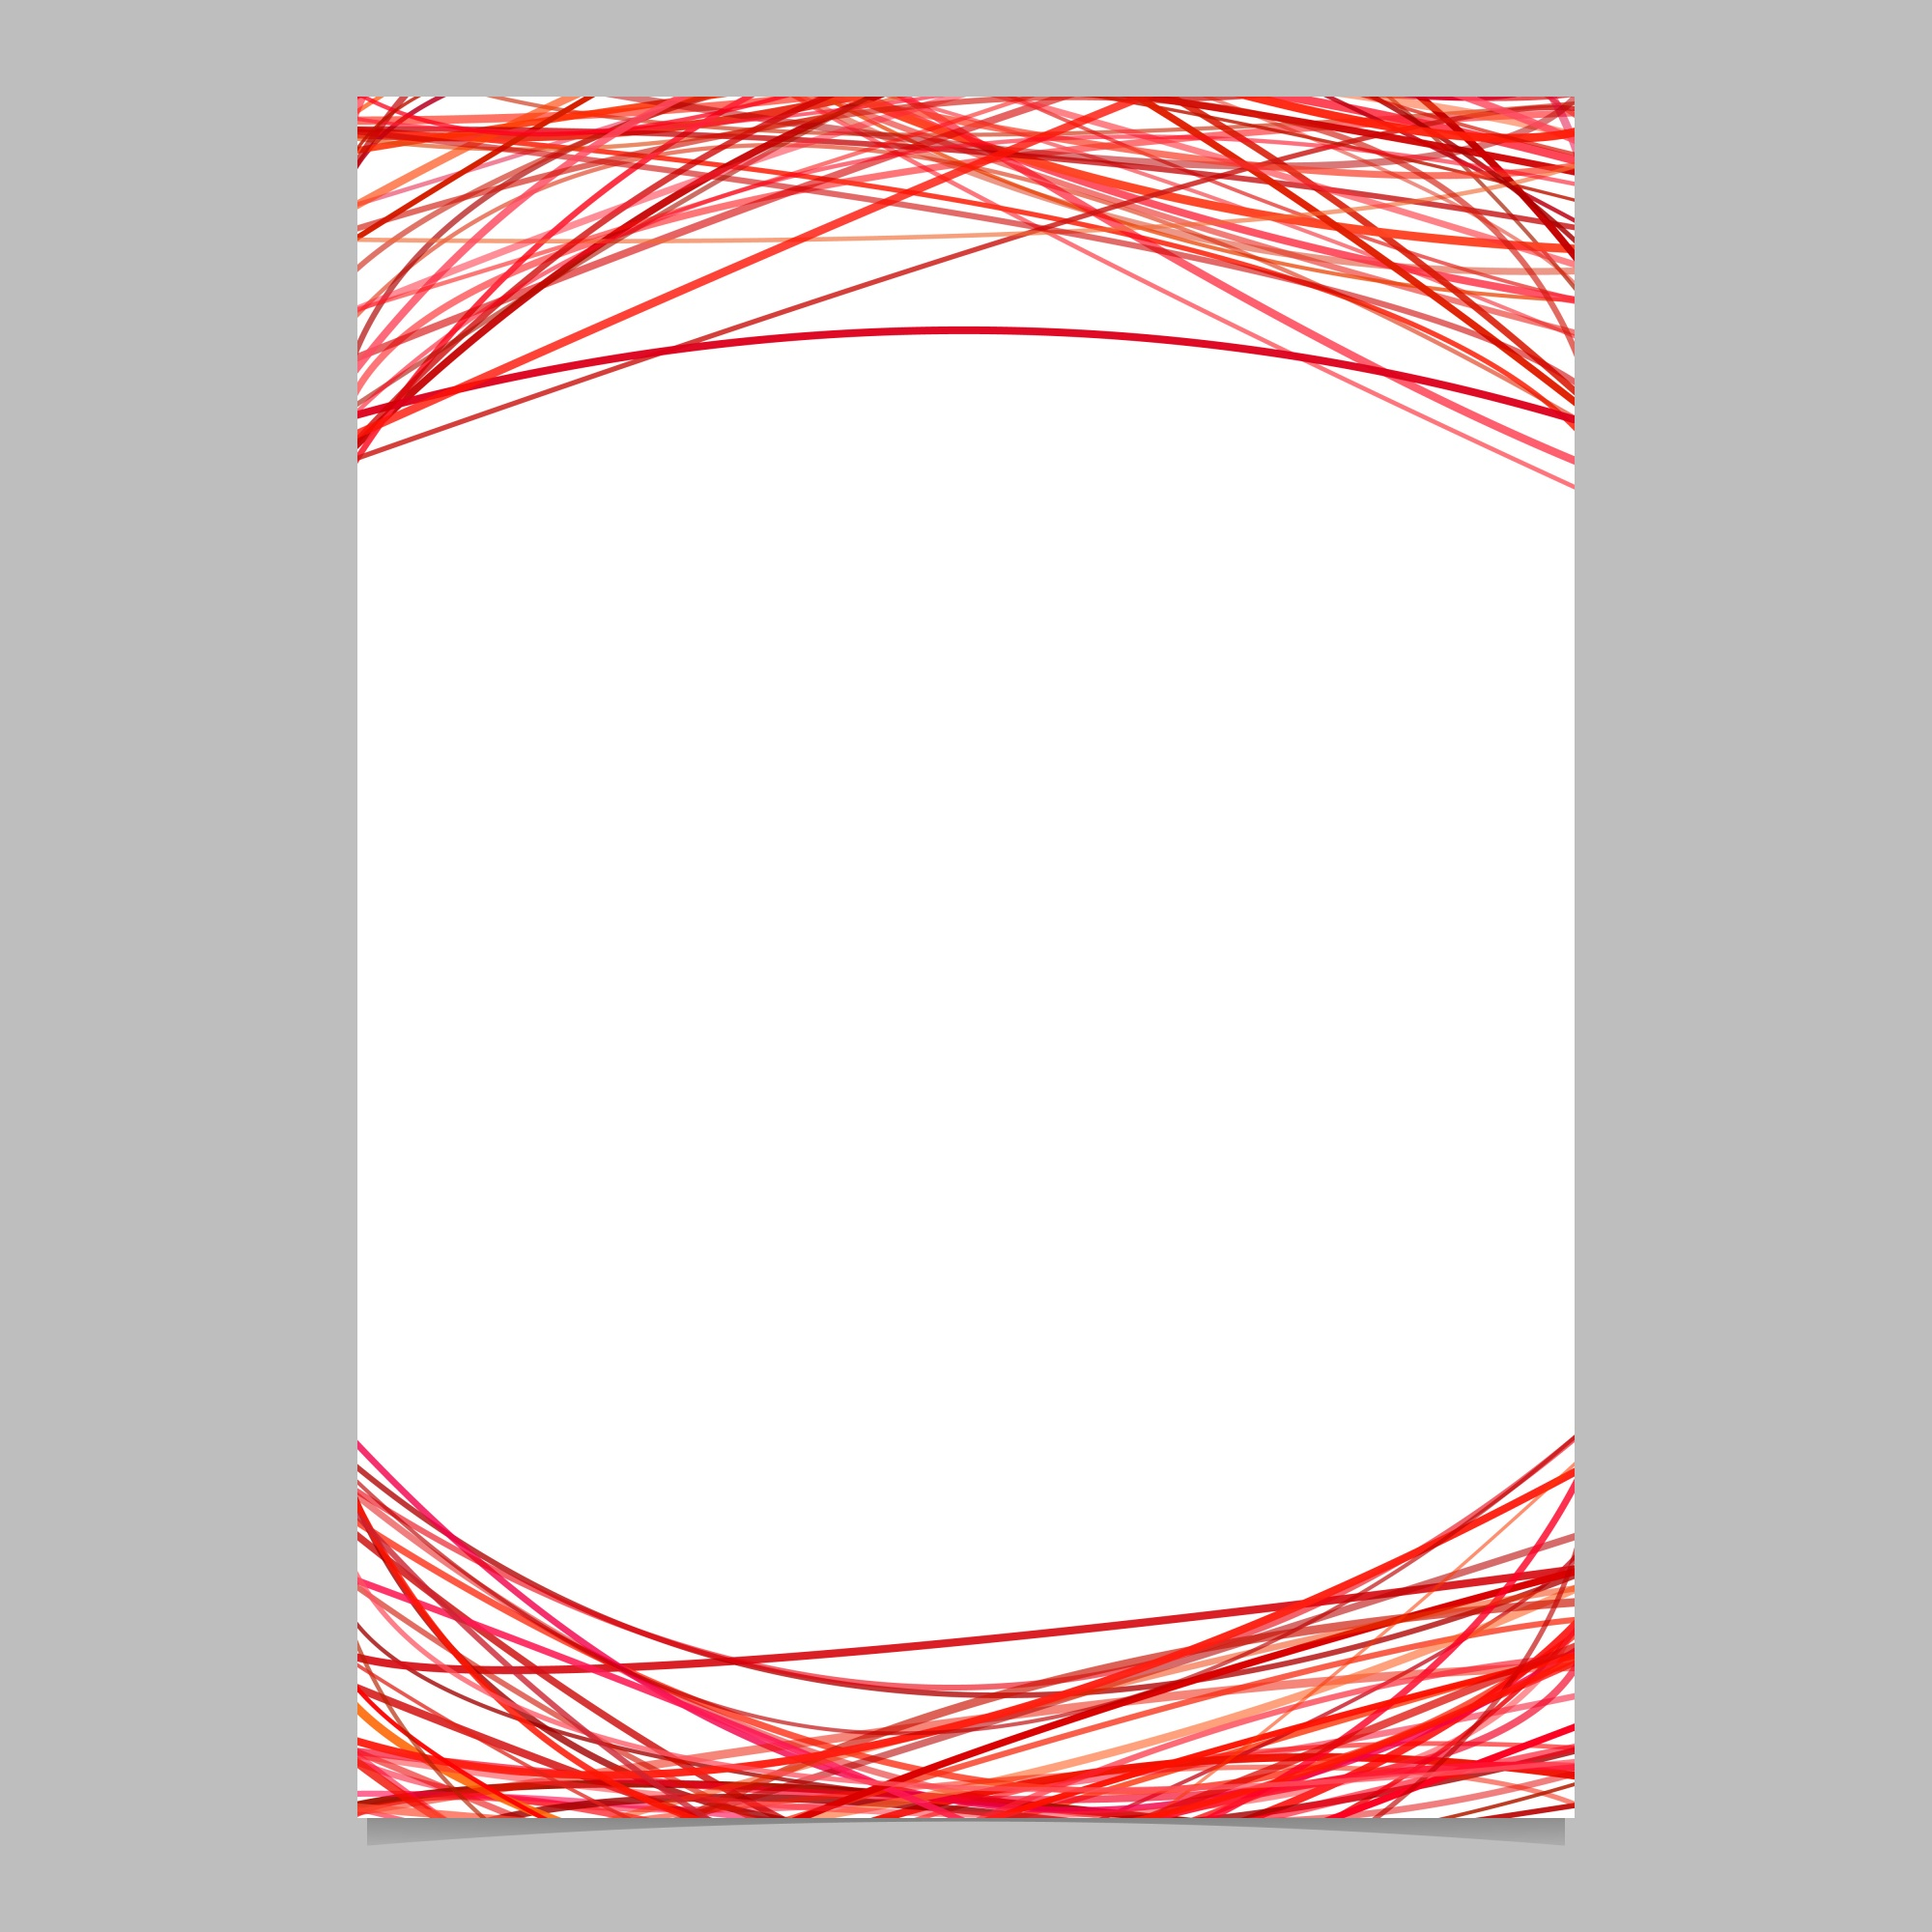 Document template with arched stripes in red tones - blank vector brochure illustration on white background